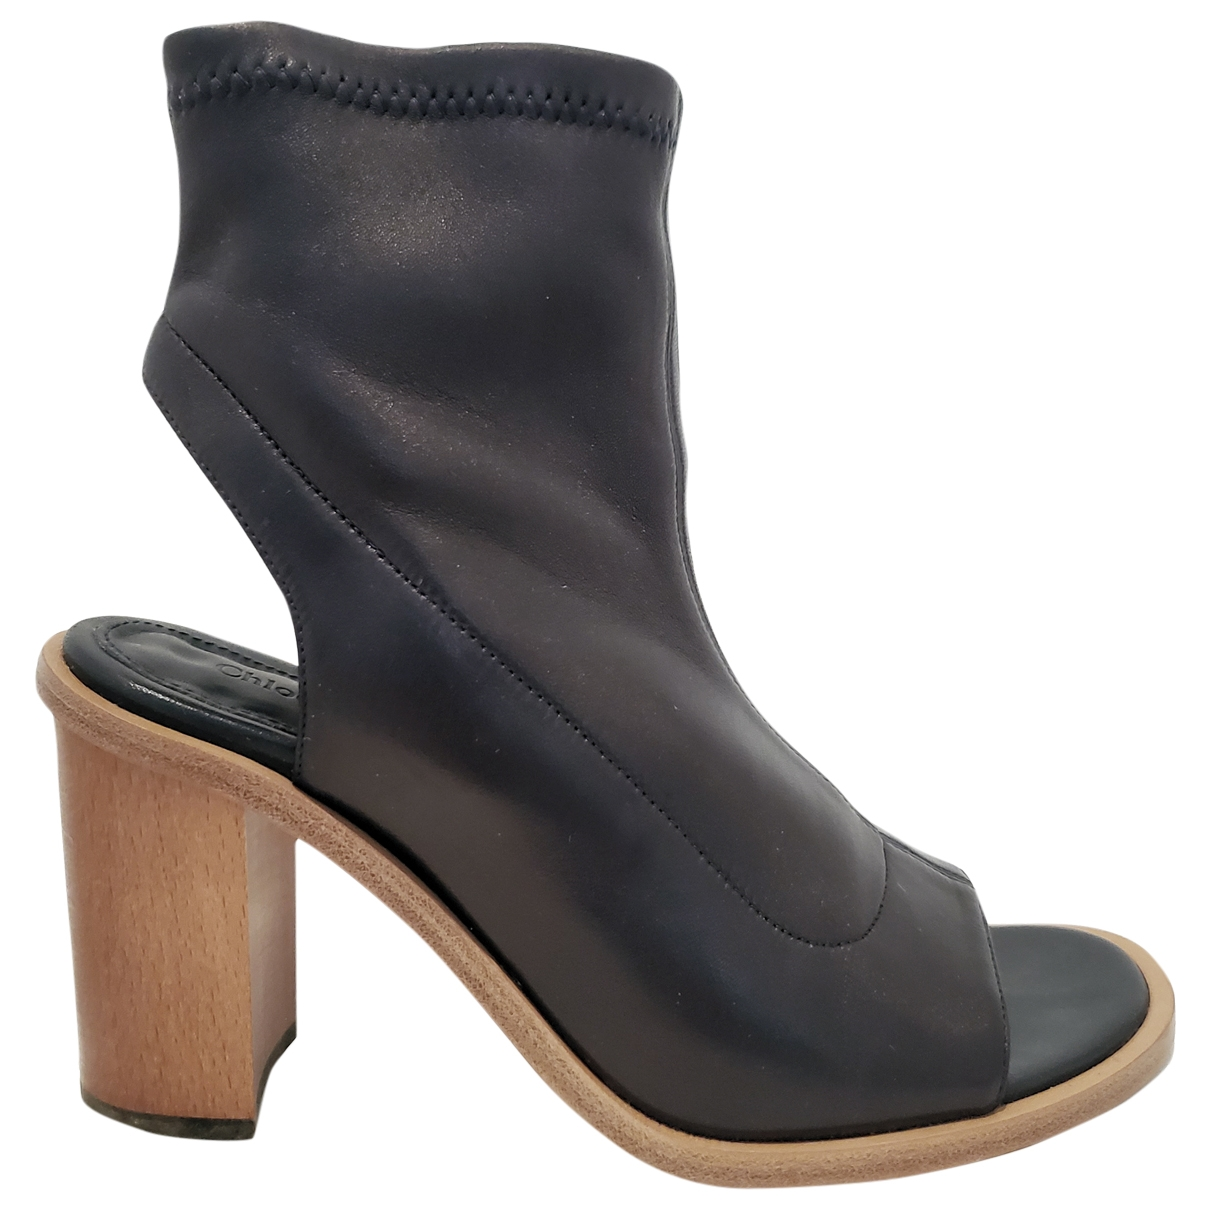 Chloé \N Black Leather Ankle boots for Women 38 EU